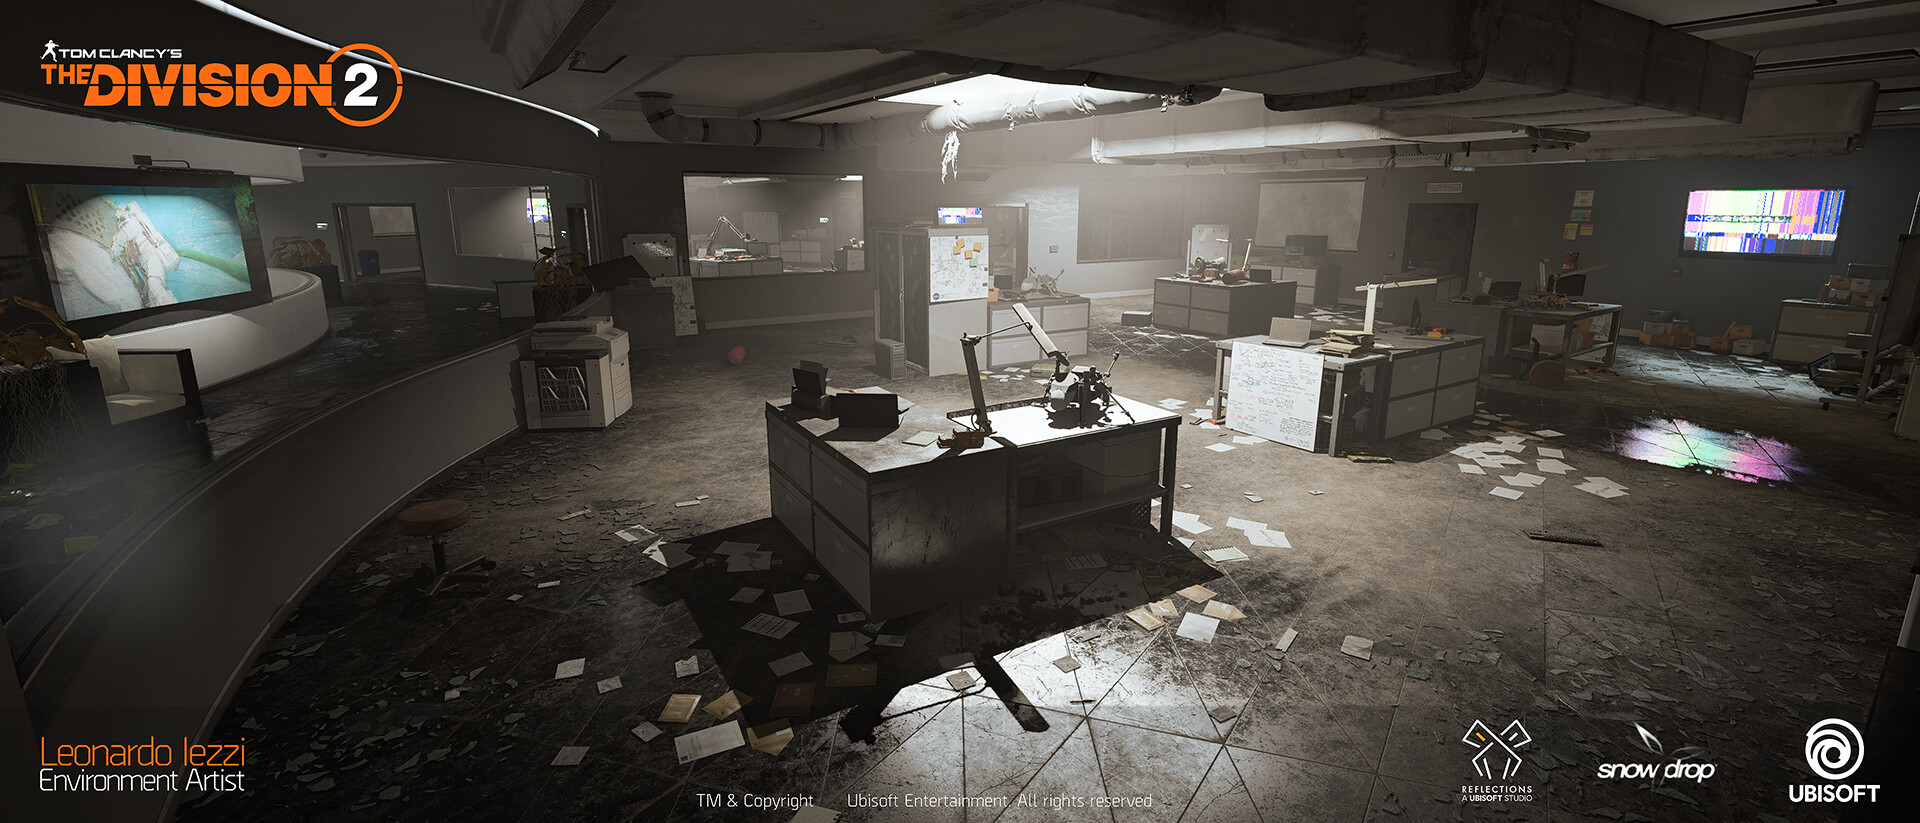 Leonardo iezzi leonardo iezzi the division 2 environment art 02 atrium 033 wide